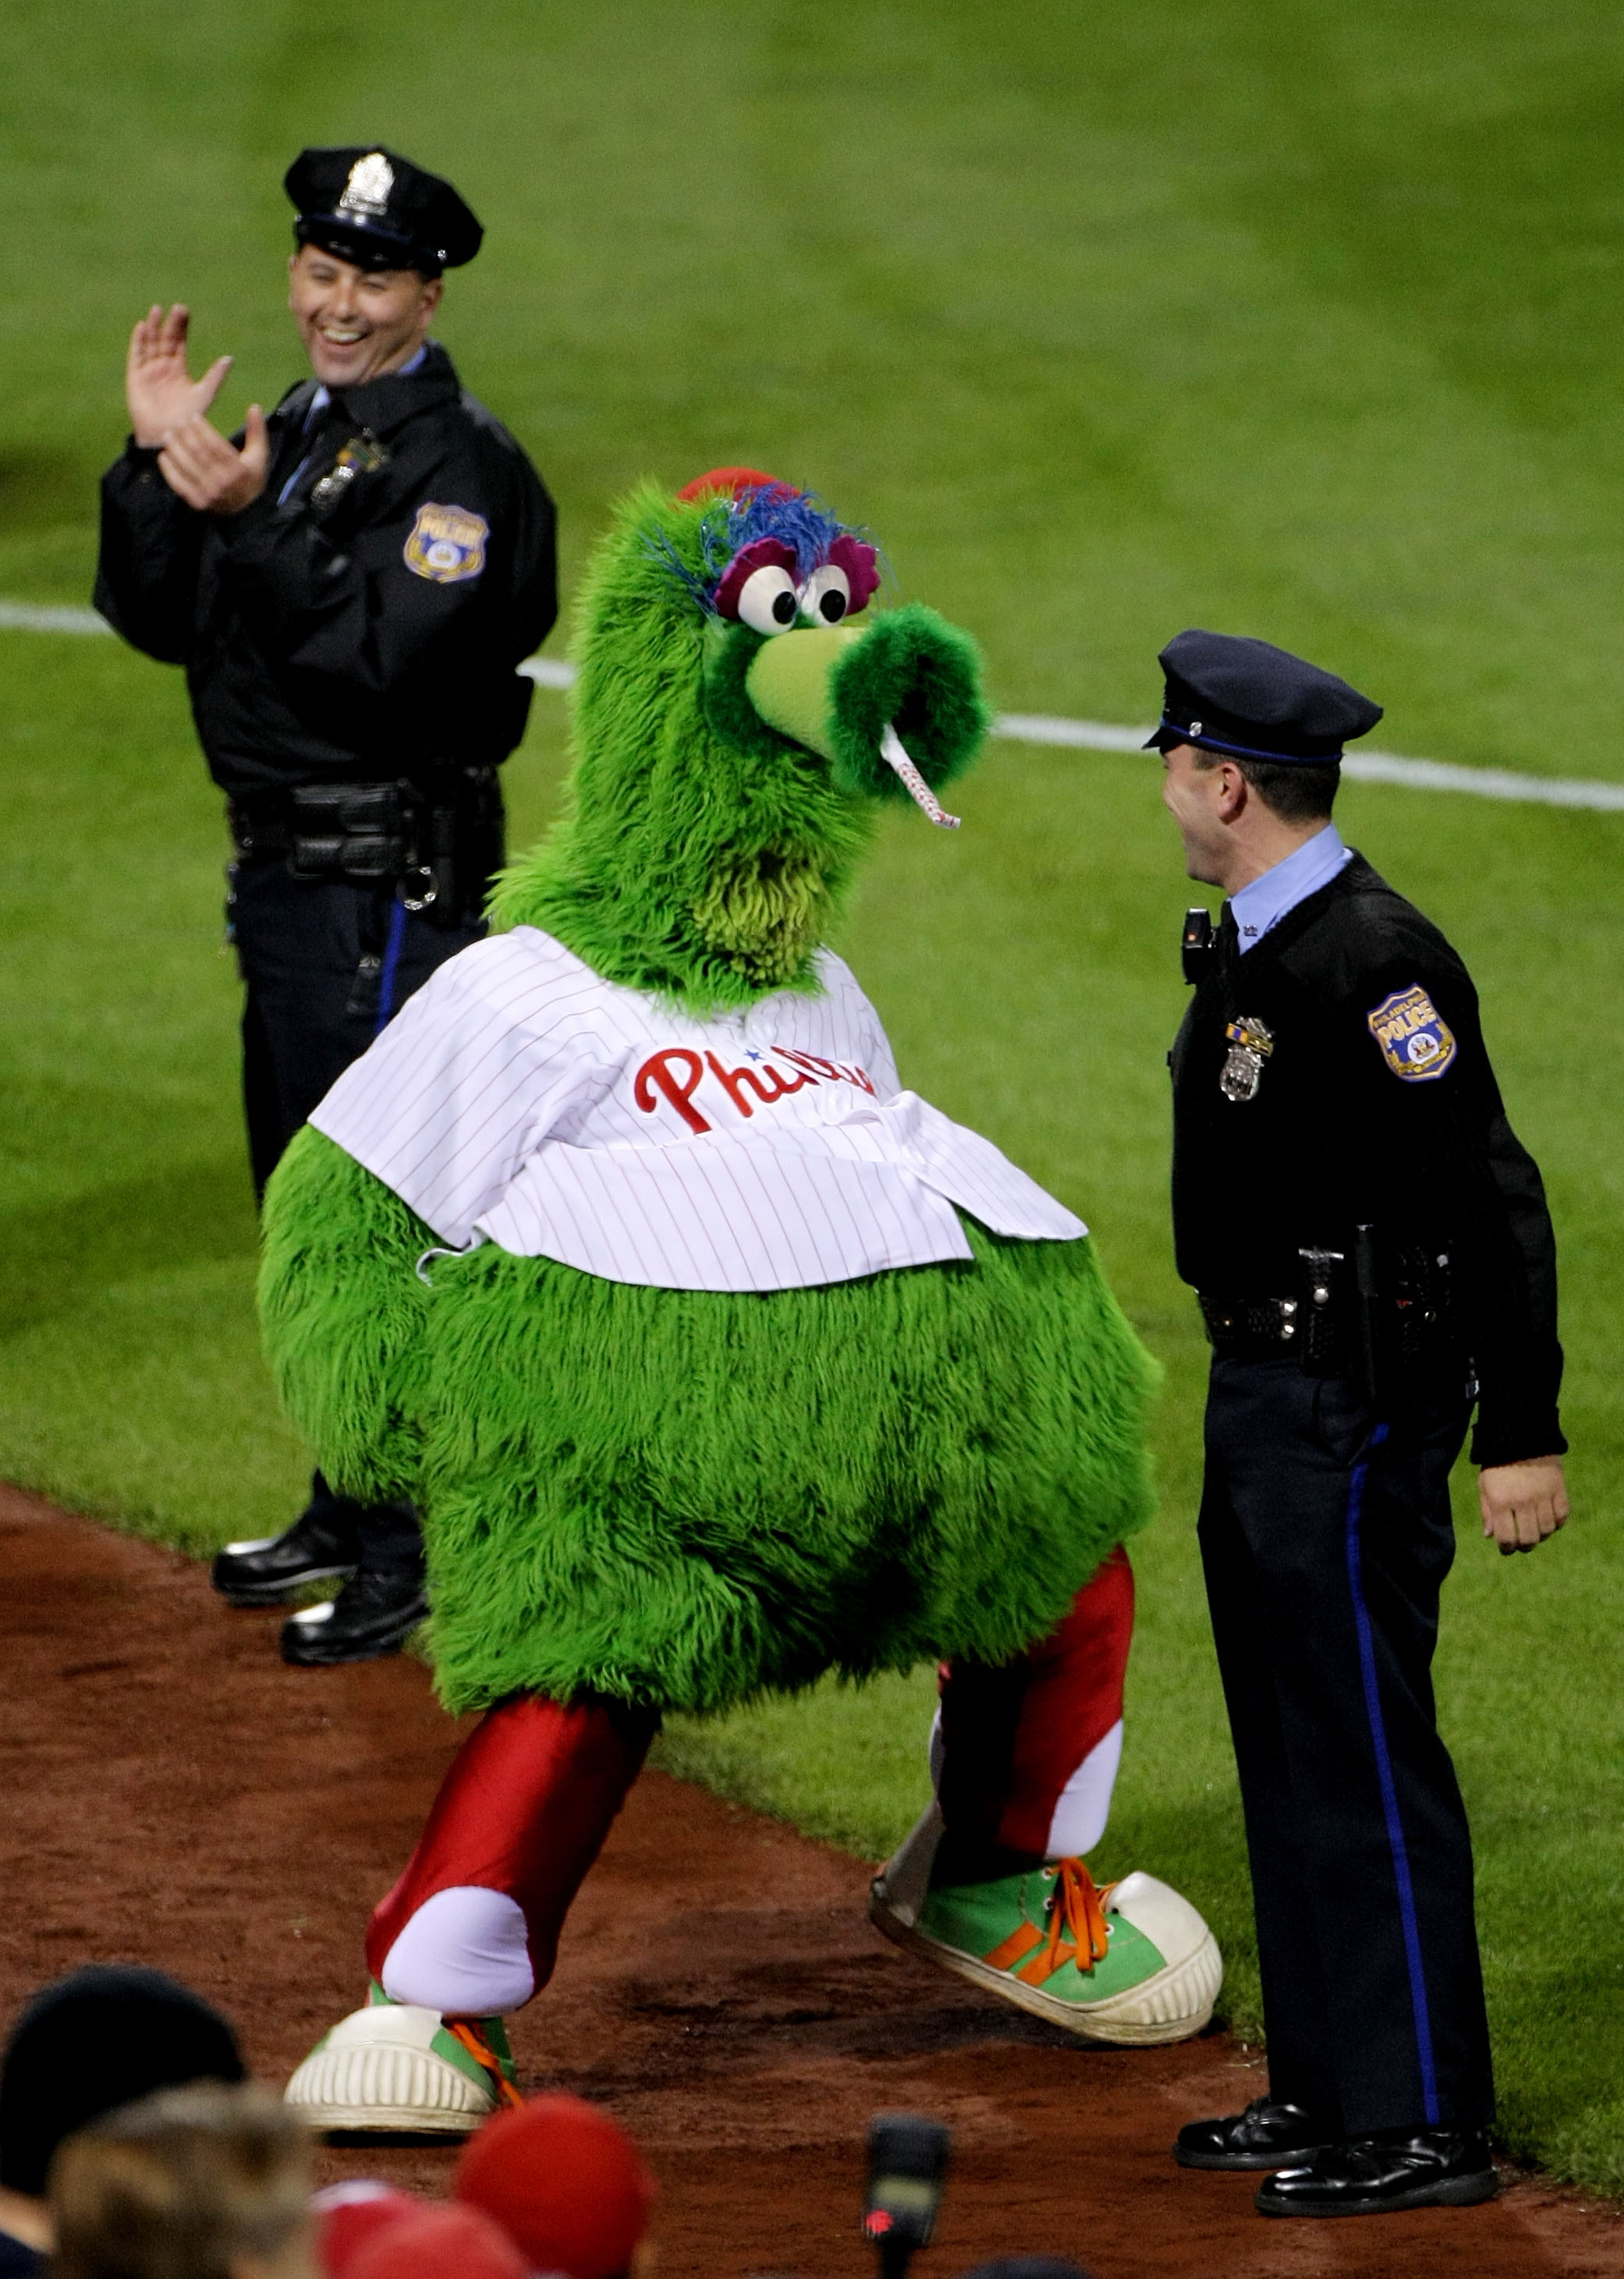 PHILADELPHIA - OCTOBER 26:  The Philly Phanatic performs during game four of the 2008 MLB World Series on October 26, 2008 at Citizens Bank Park in Philadelphia, Pennsylvania.  (Photo by Doug Pensinger/Getty Images)